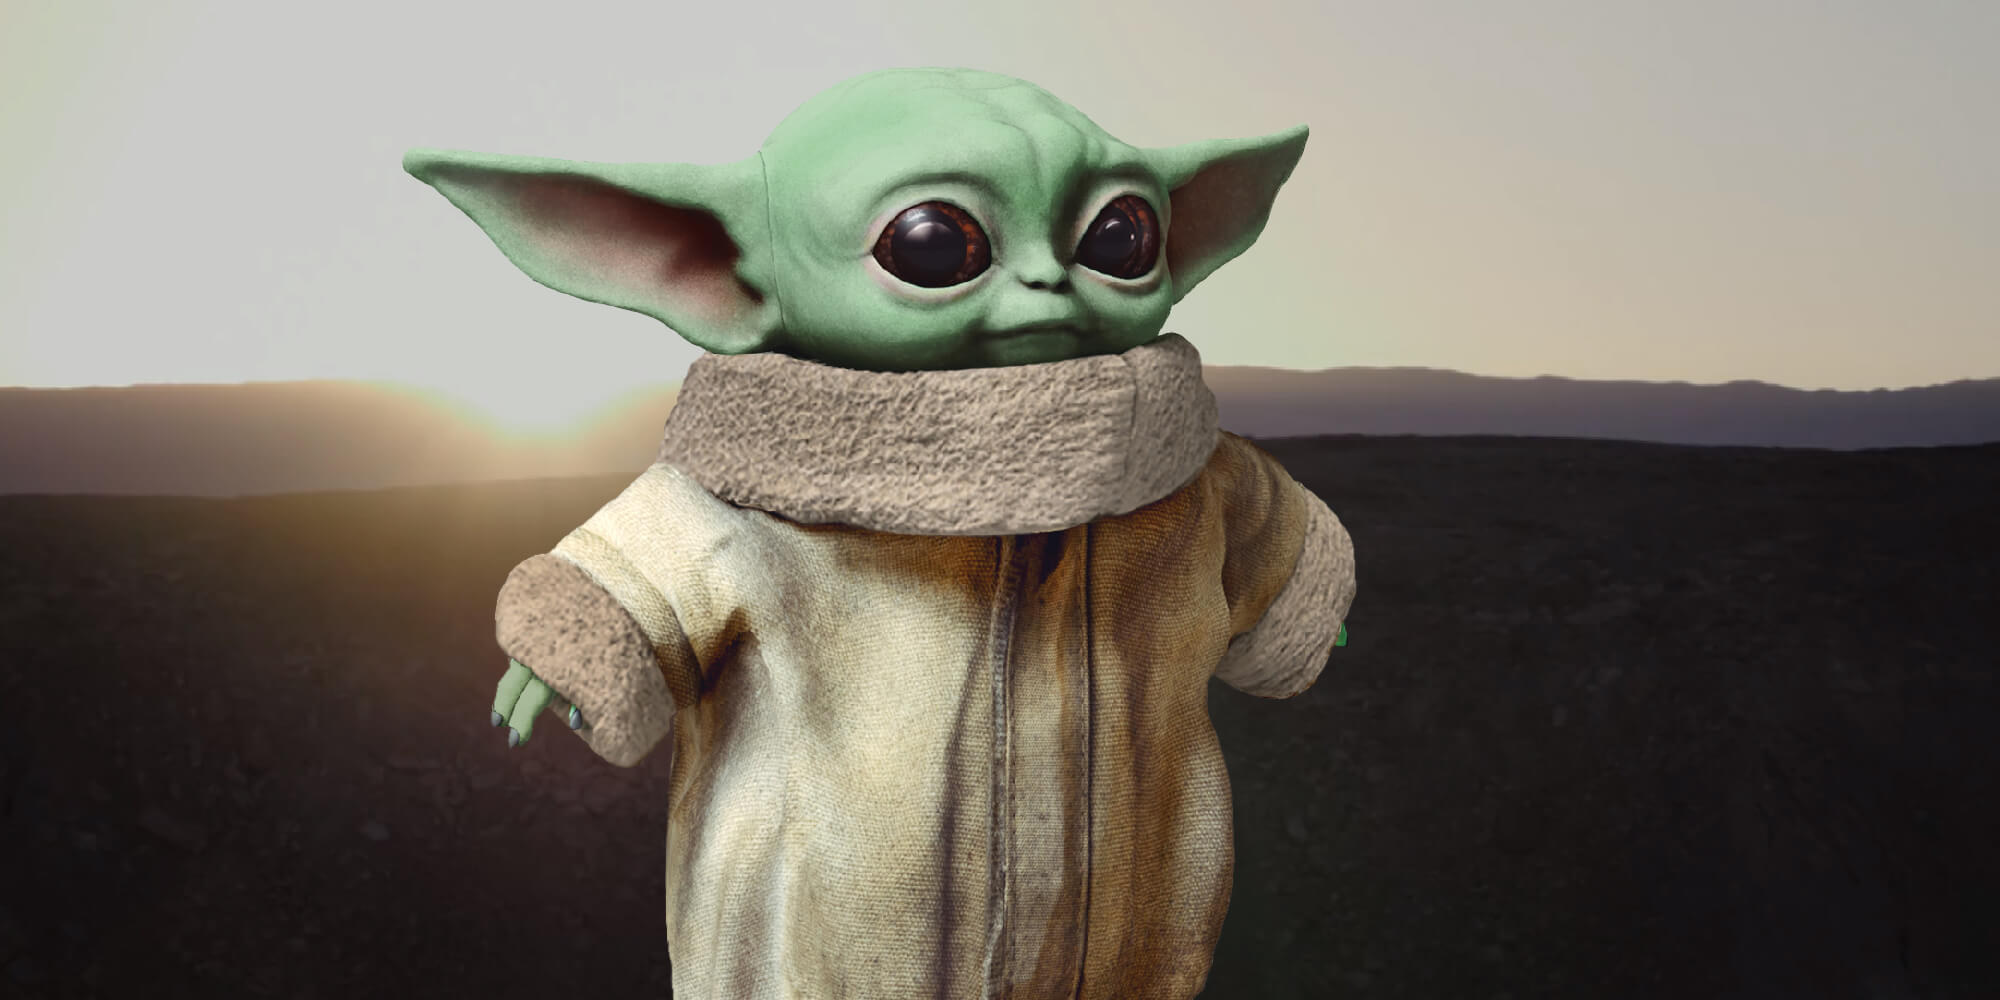 Baby Yoda toys, merchandise now available for pre-order